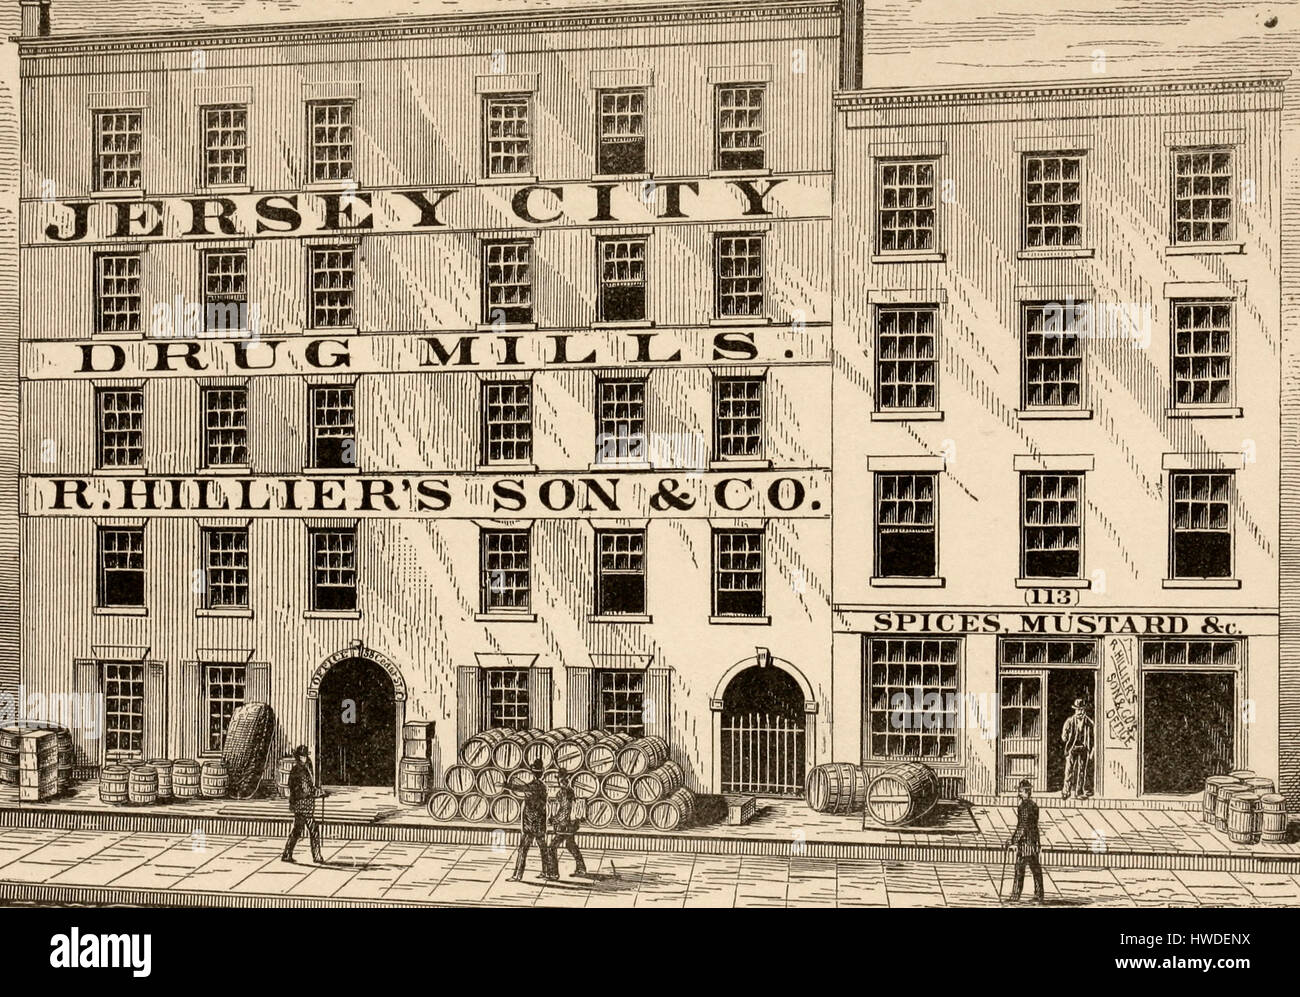 Jersey City Drug and Spice Mills, circa 1875 - Stock Image